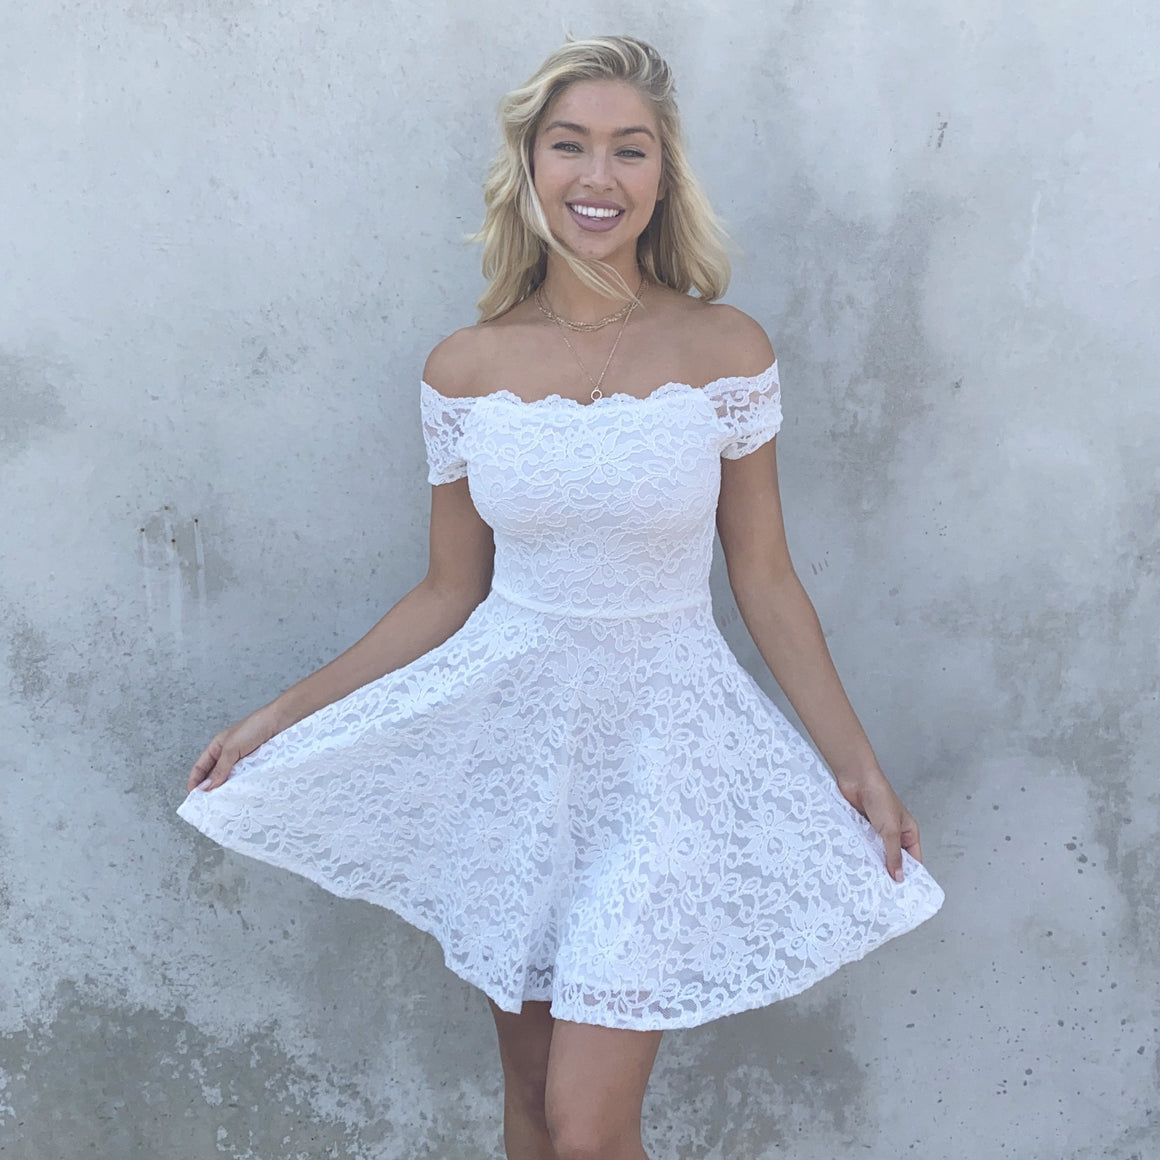 Feelin' the Love White Lace Dress - Dainty Hooligan